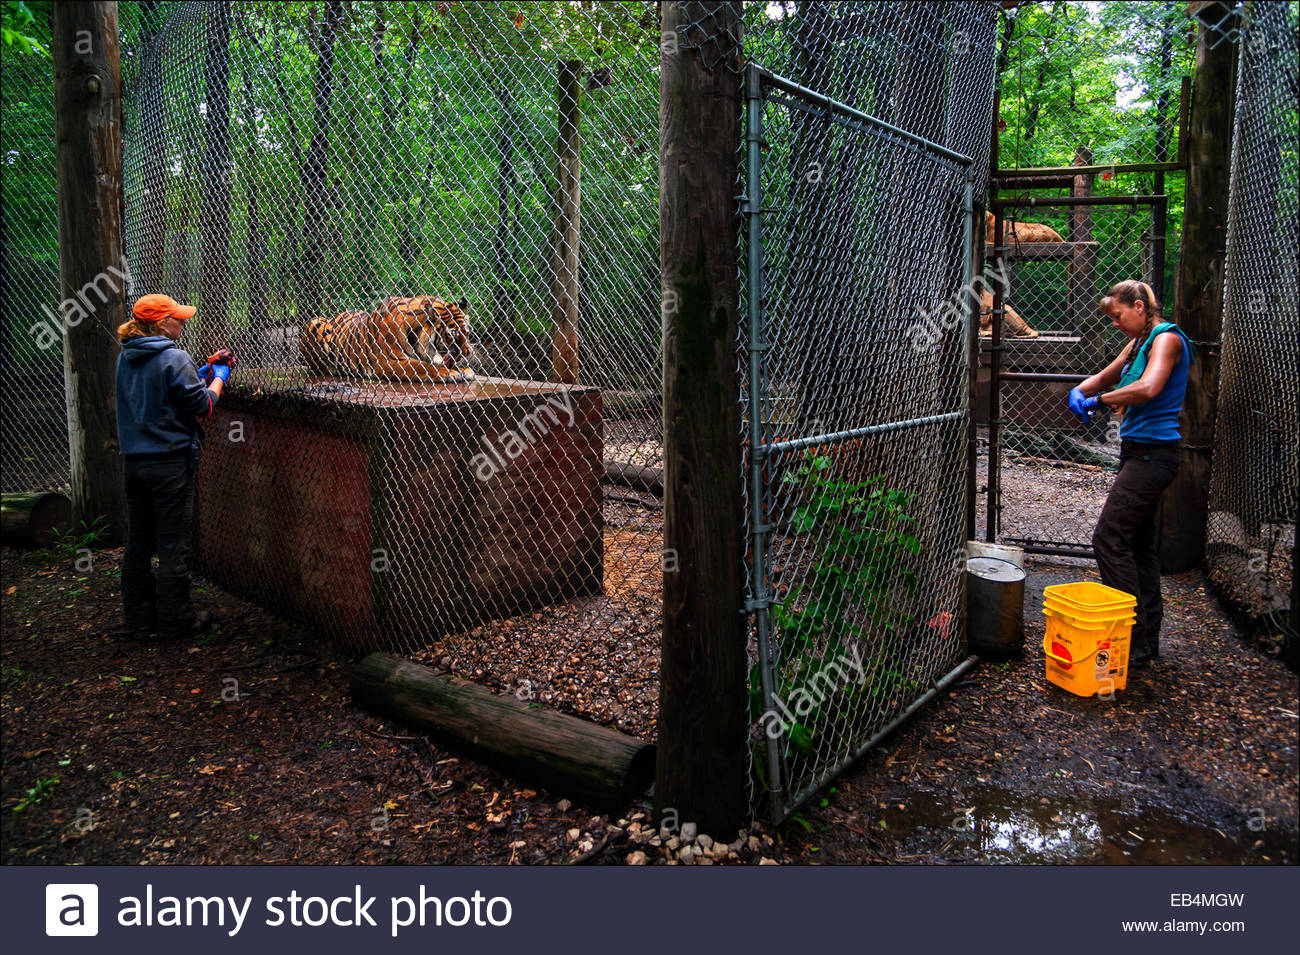 sanctuary staff prepare to feed caged tigers in forested enclosures